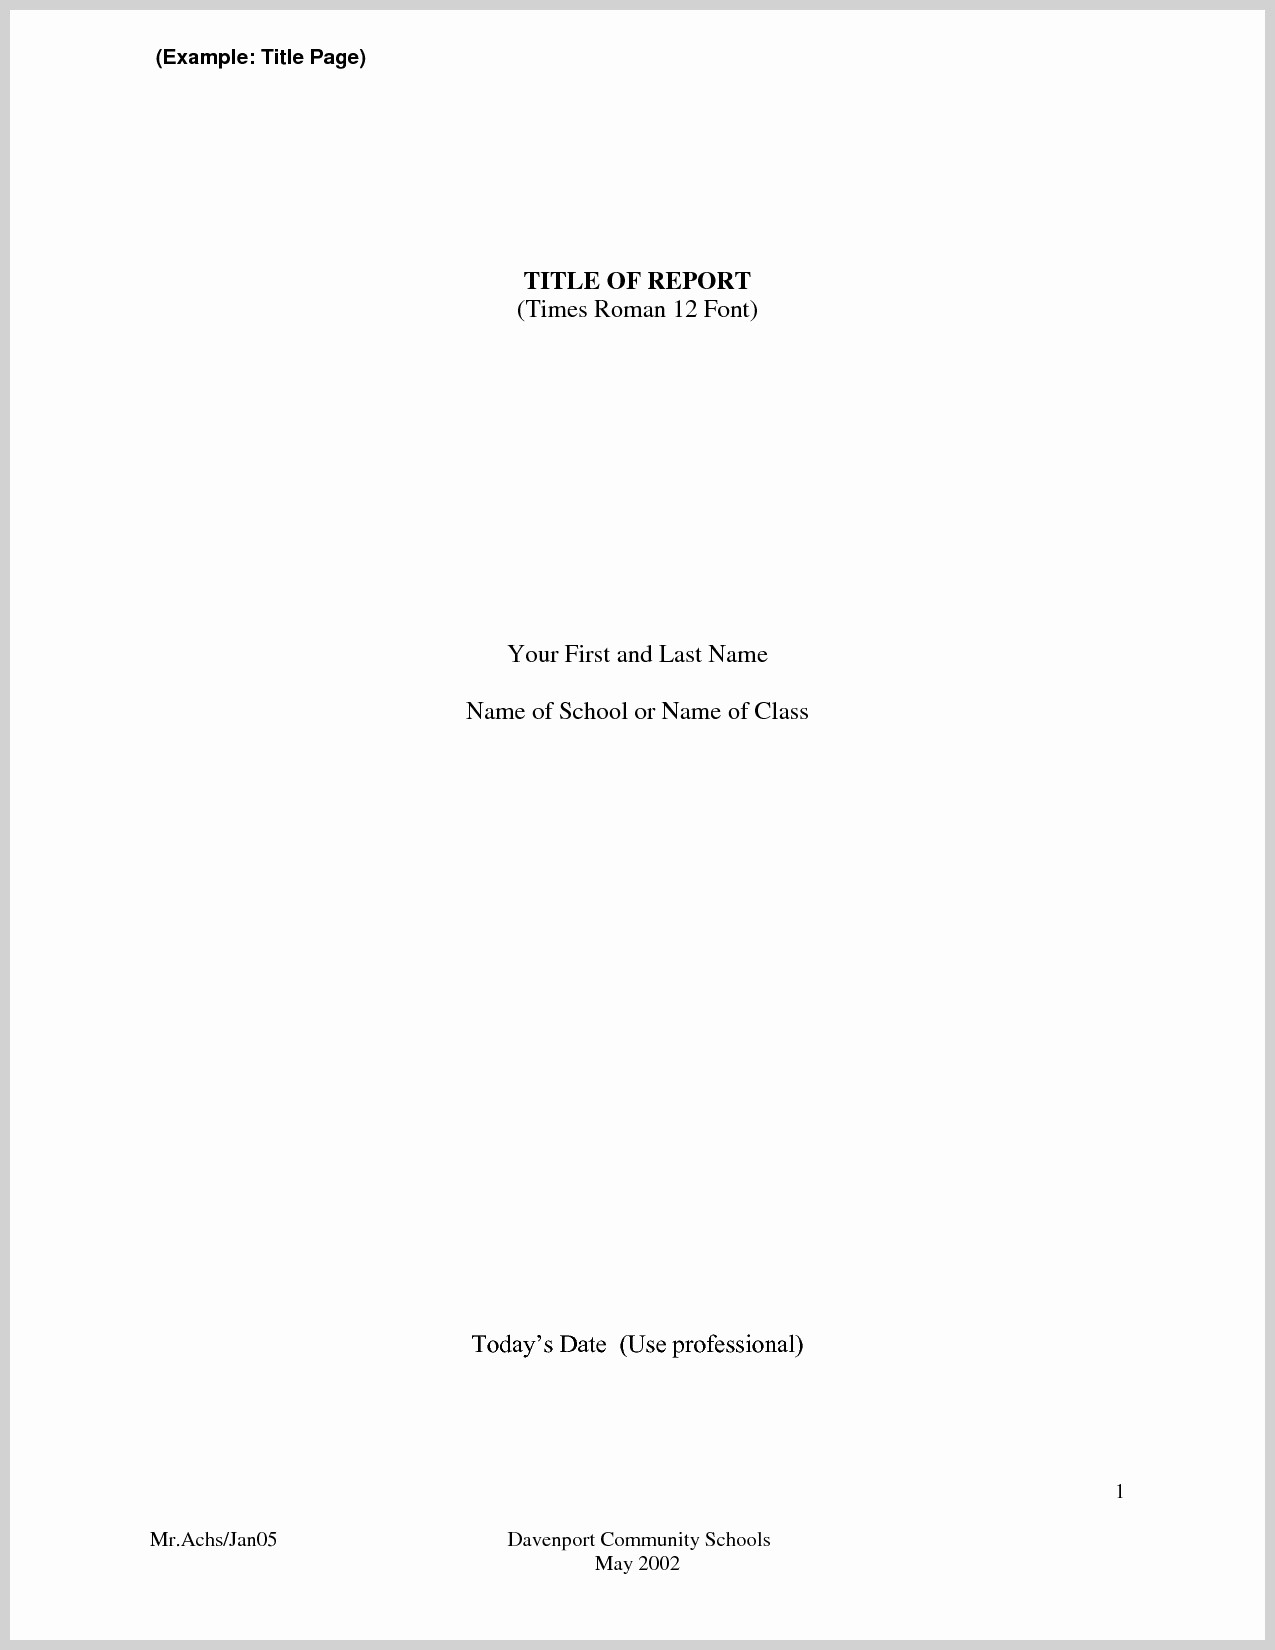 Sample Title Page Apa Style Awesome Research Paper Apa Style Title Page Title Page